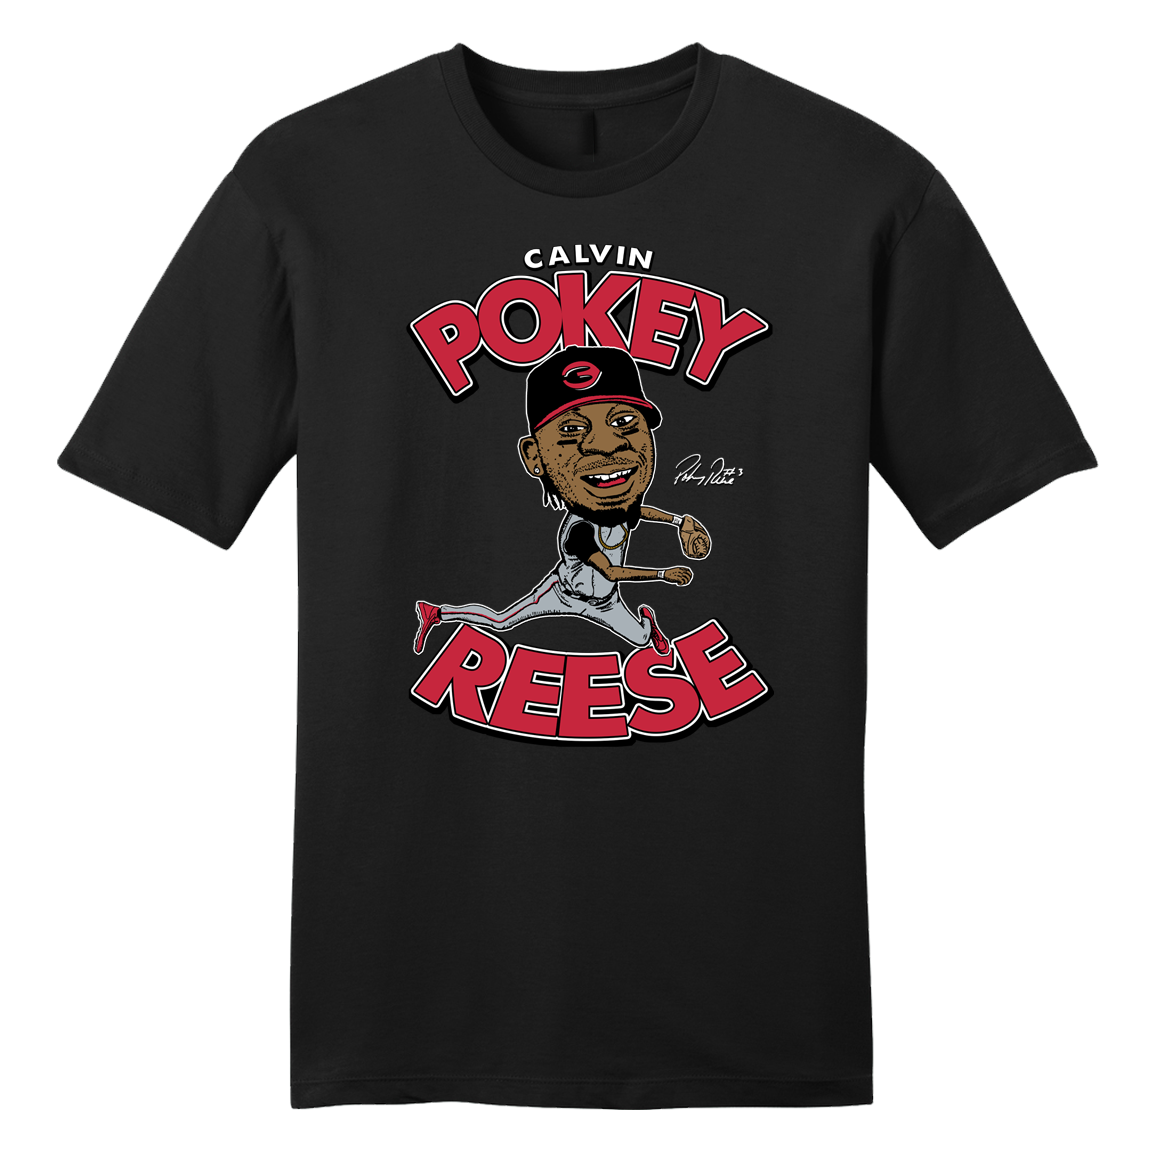 Pokey Reese Tee Black